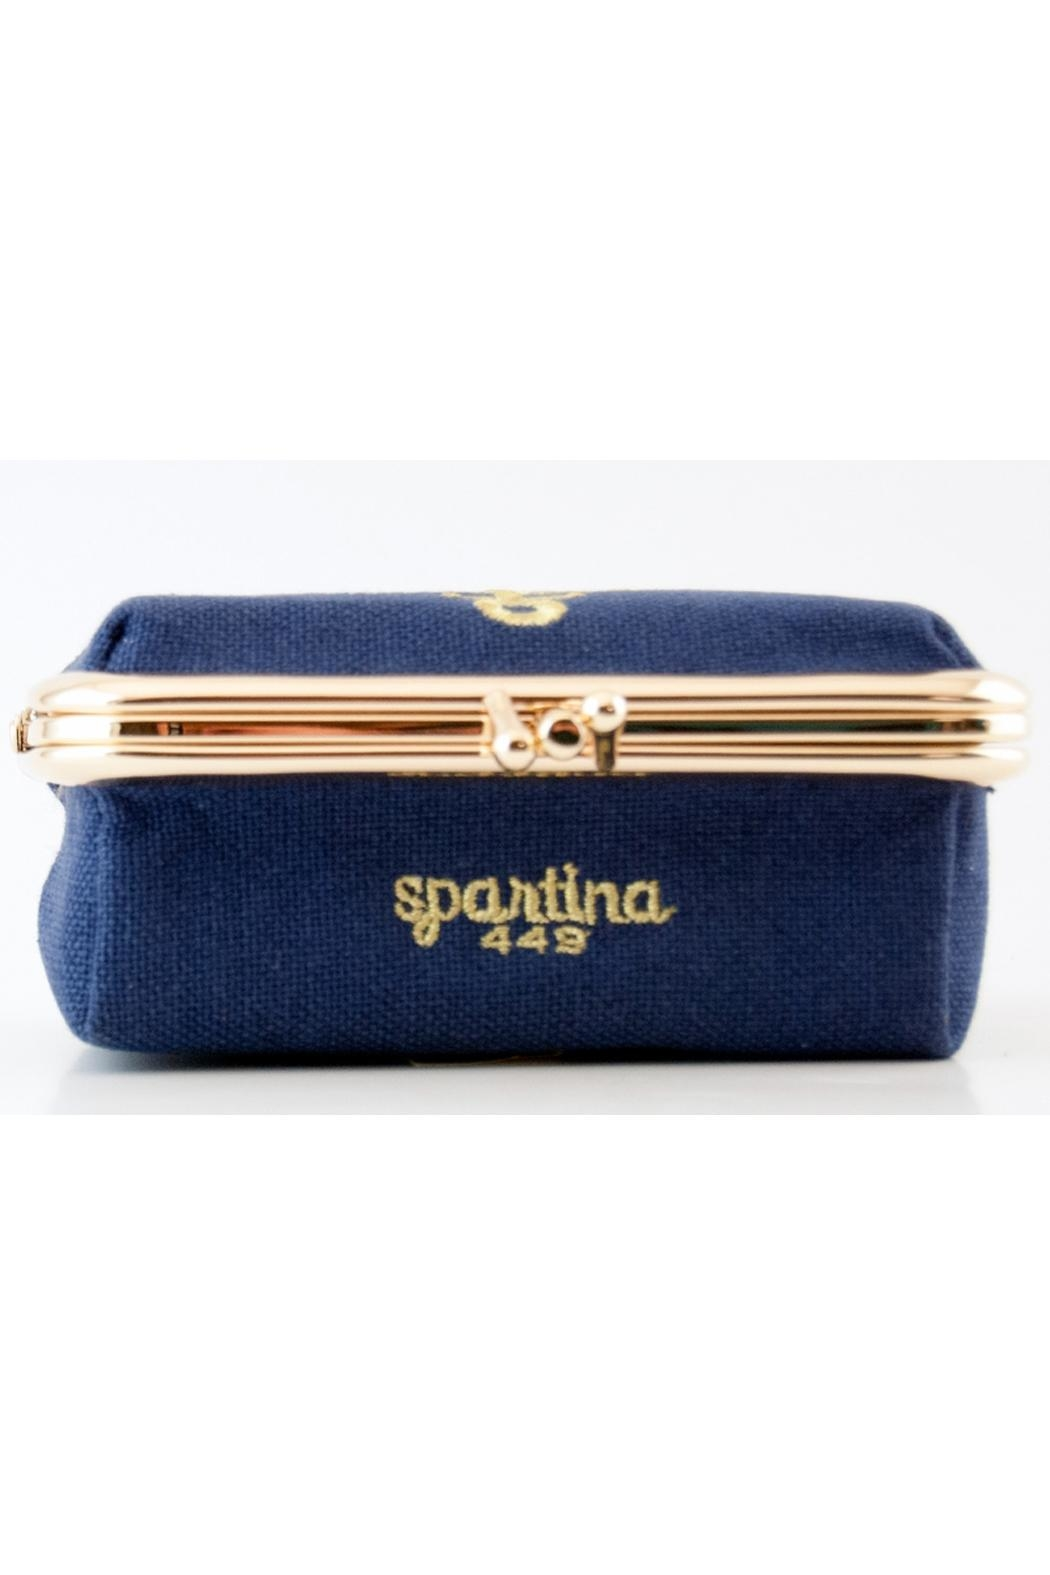 Spartina 449 Gold Manicure Set - Front Full Image